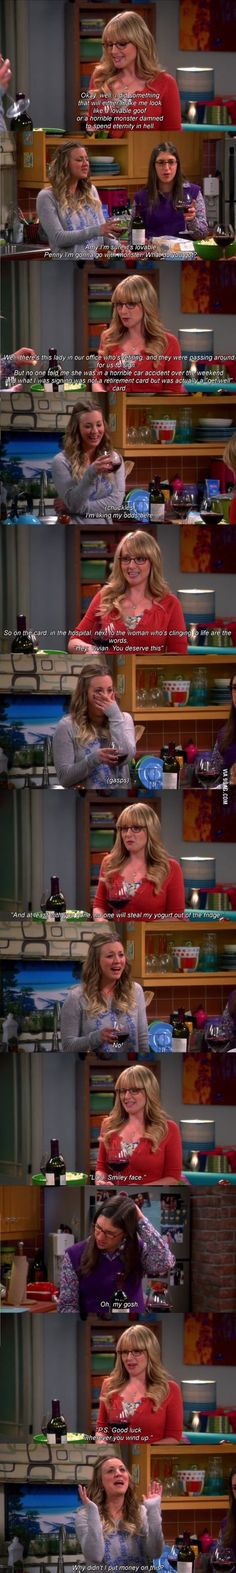 Gotta love Big Bang Theory